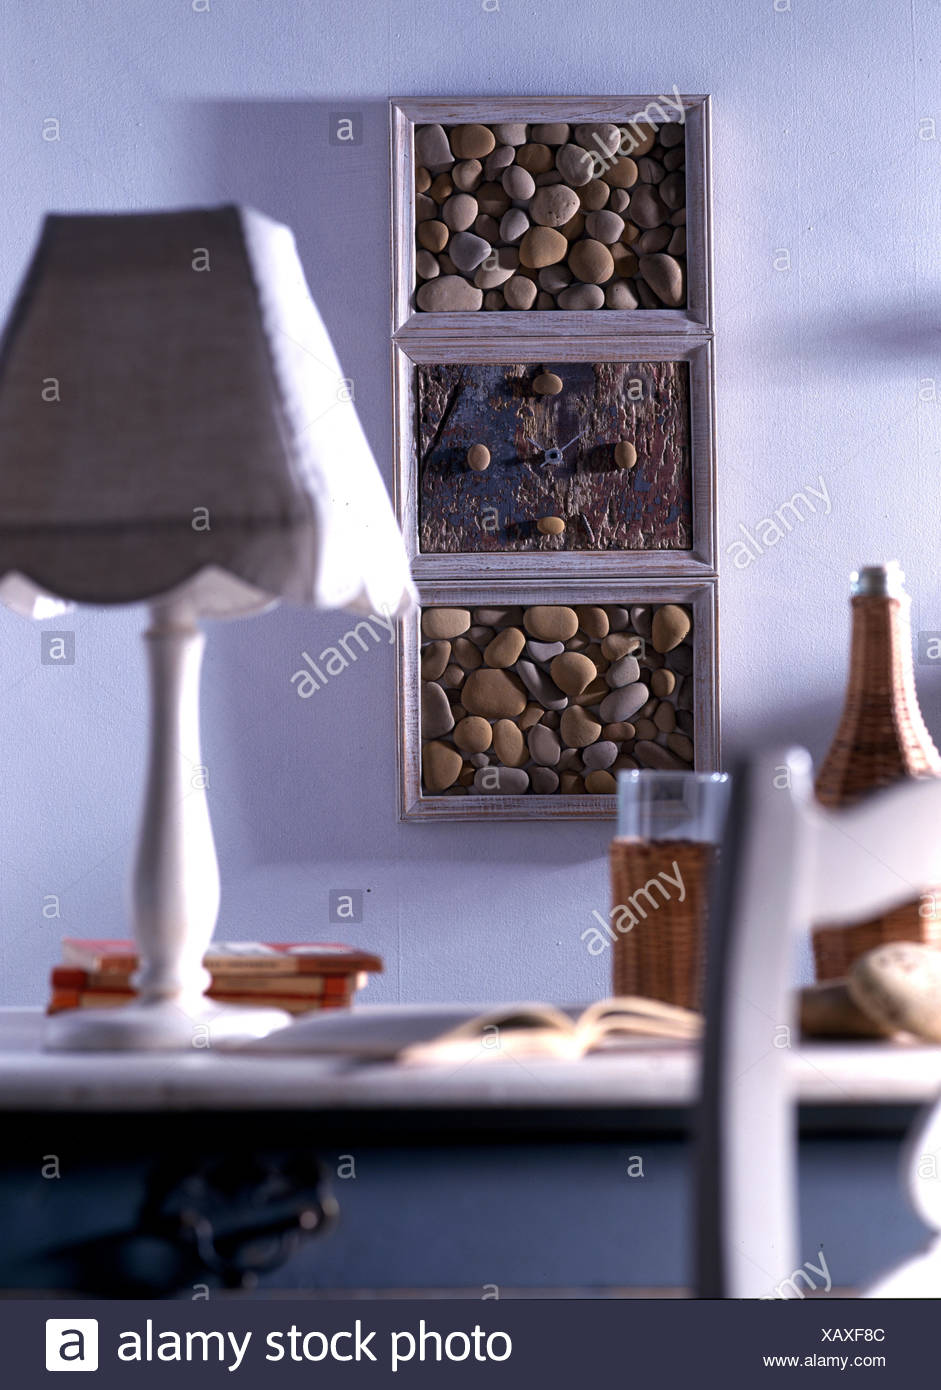 Seashore pebbles in box frame on wall - Stock Image